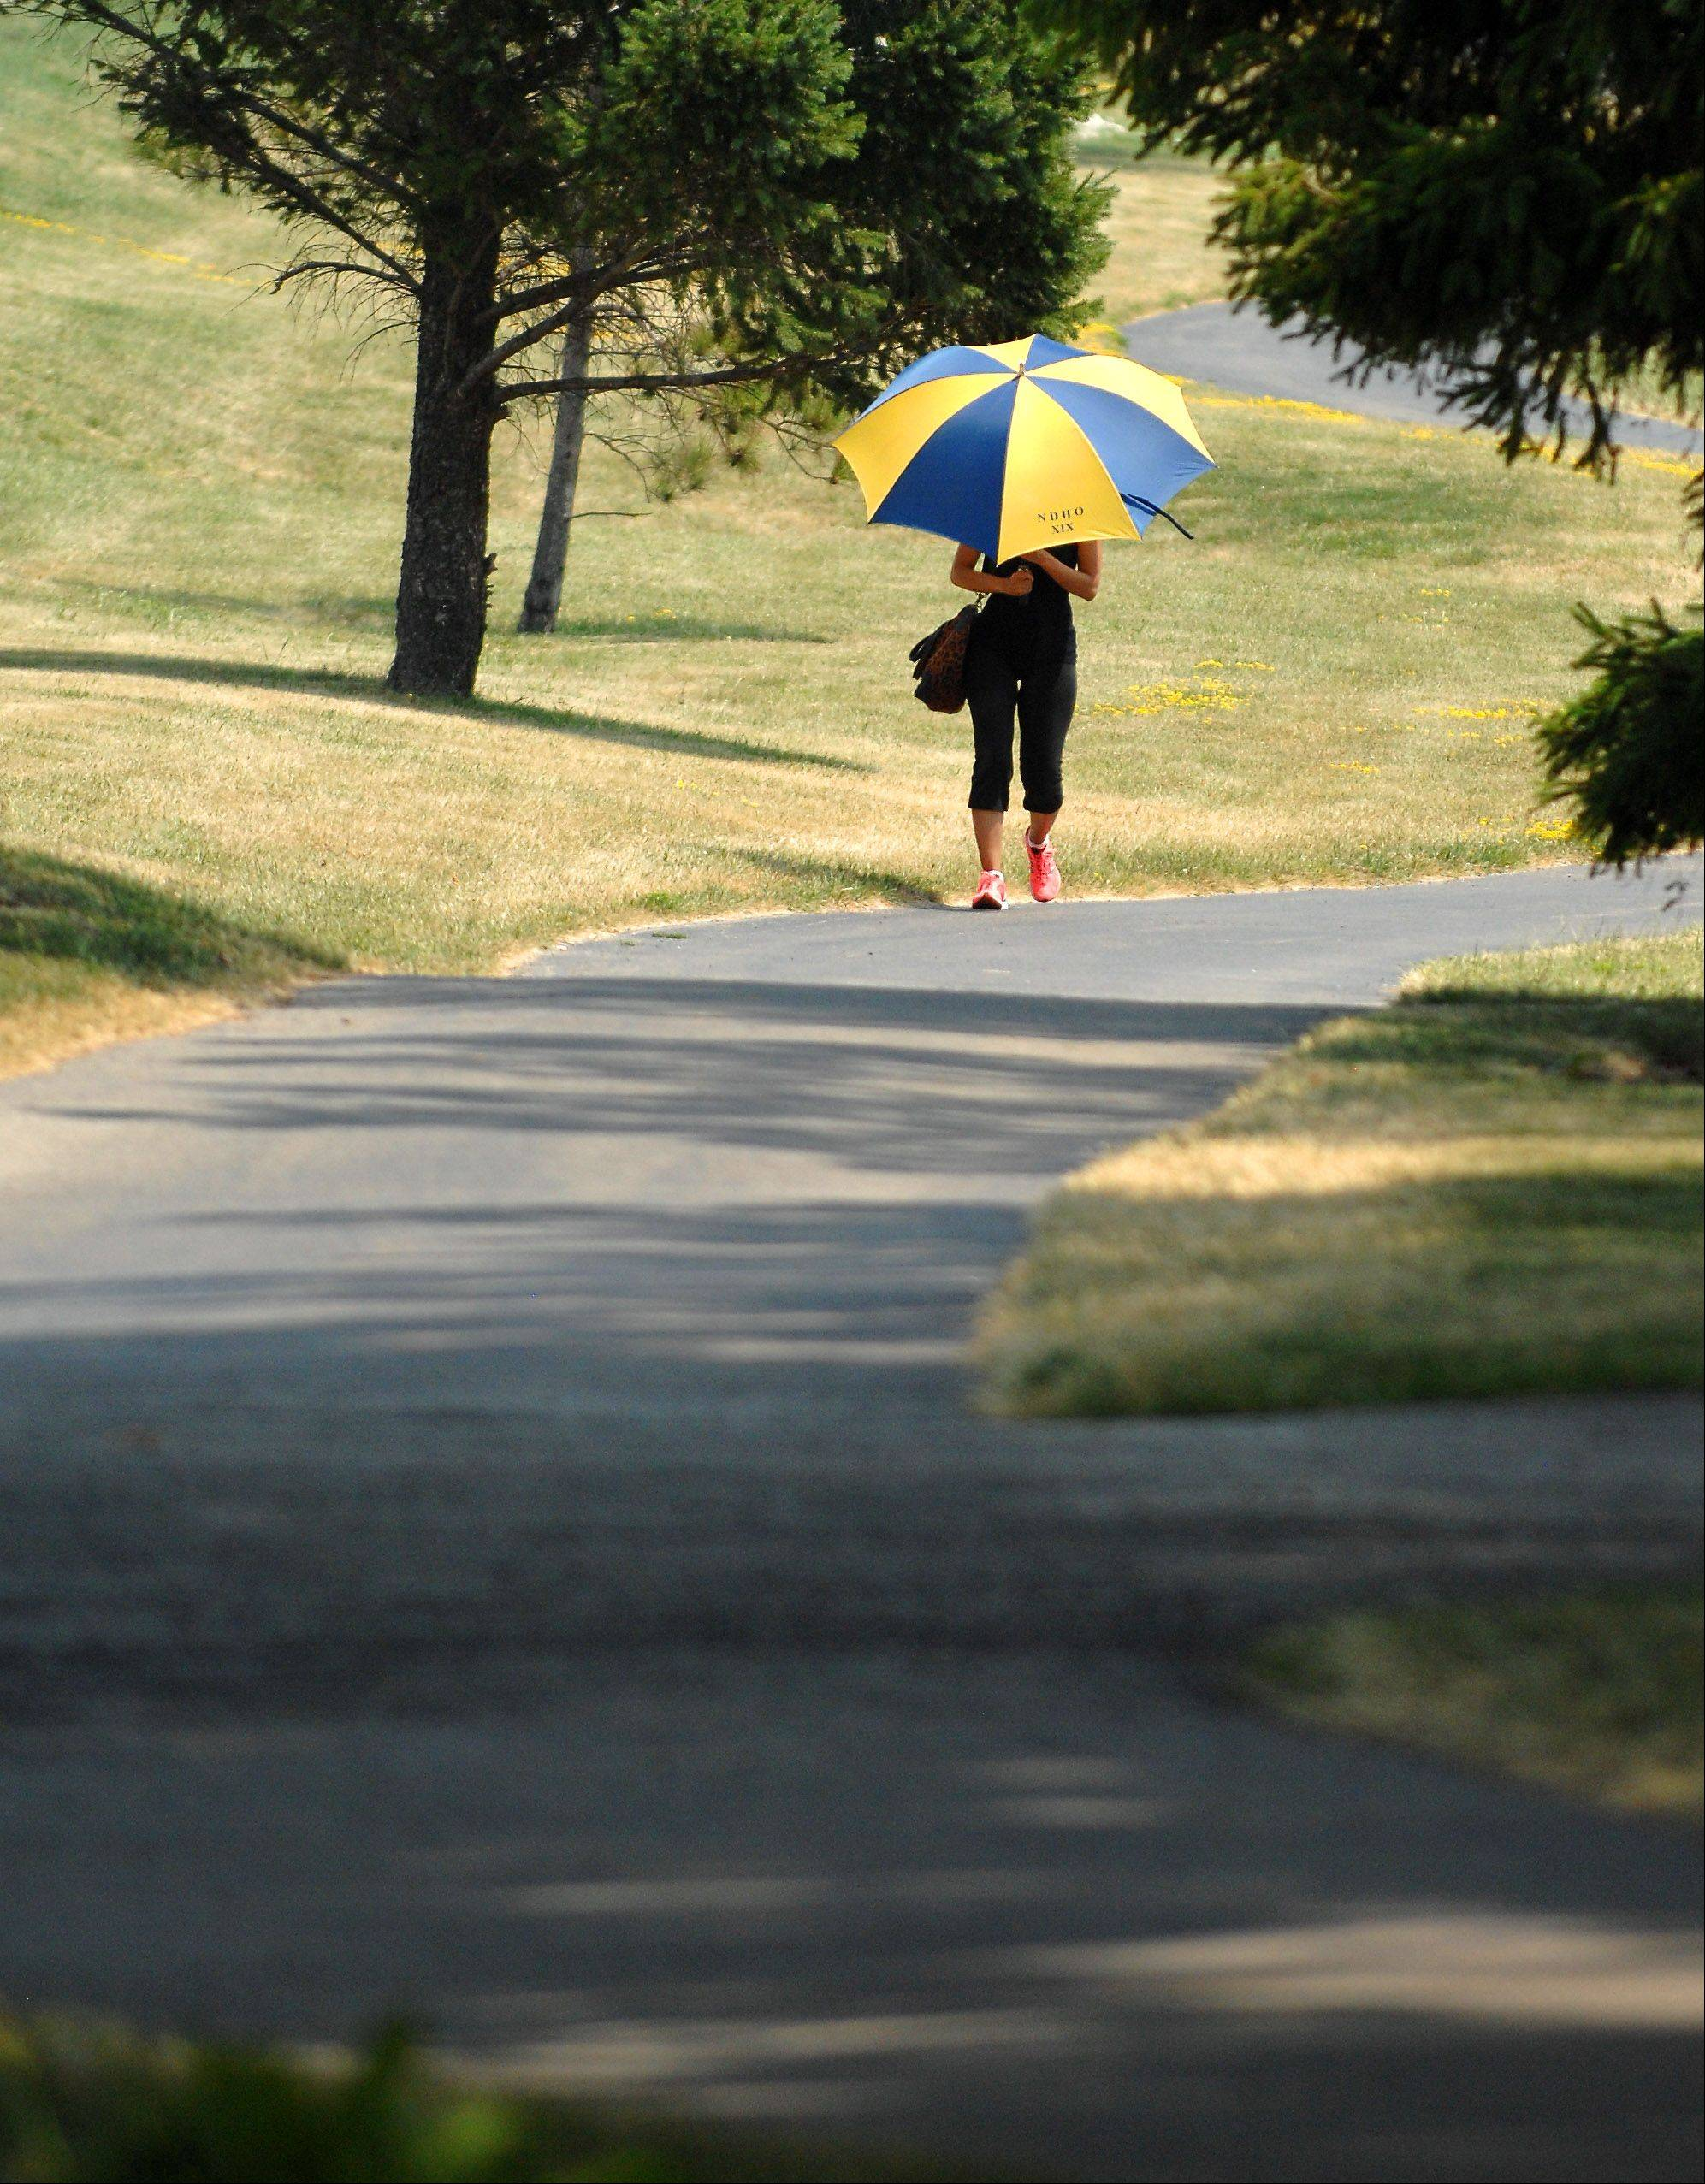 Charron Davis uses an umbrella to shield herself from the hot sun as she walks near Peck Farm Park in Geneva Thursday. Davis said she lives in Chicago but stays in Geneva for the summer.